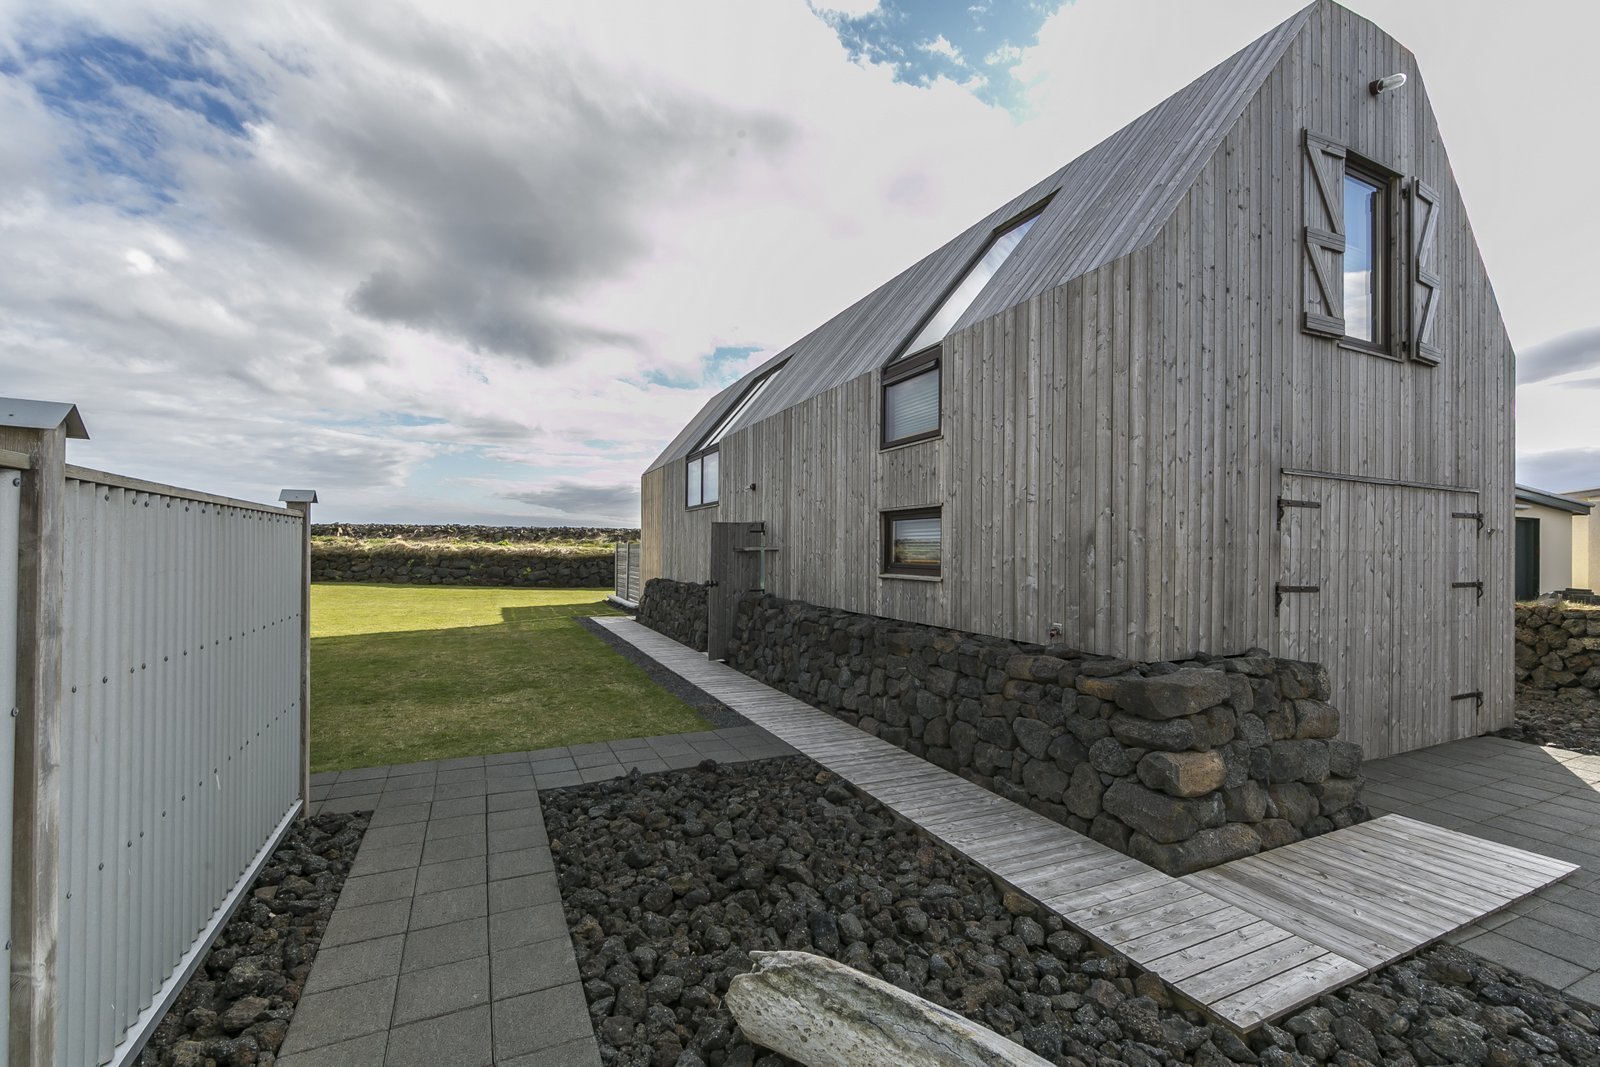 10 Incredible Rentals For Your Dream Trip to Iceland - Photo 10 of 29 -